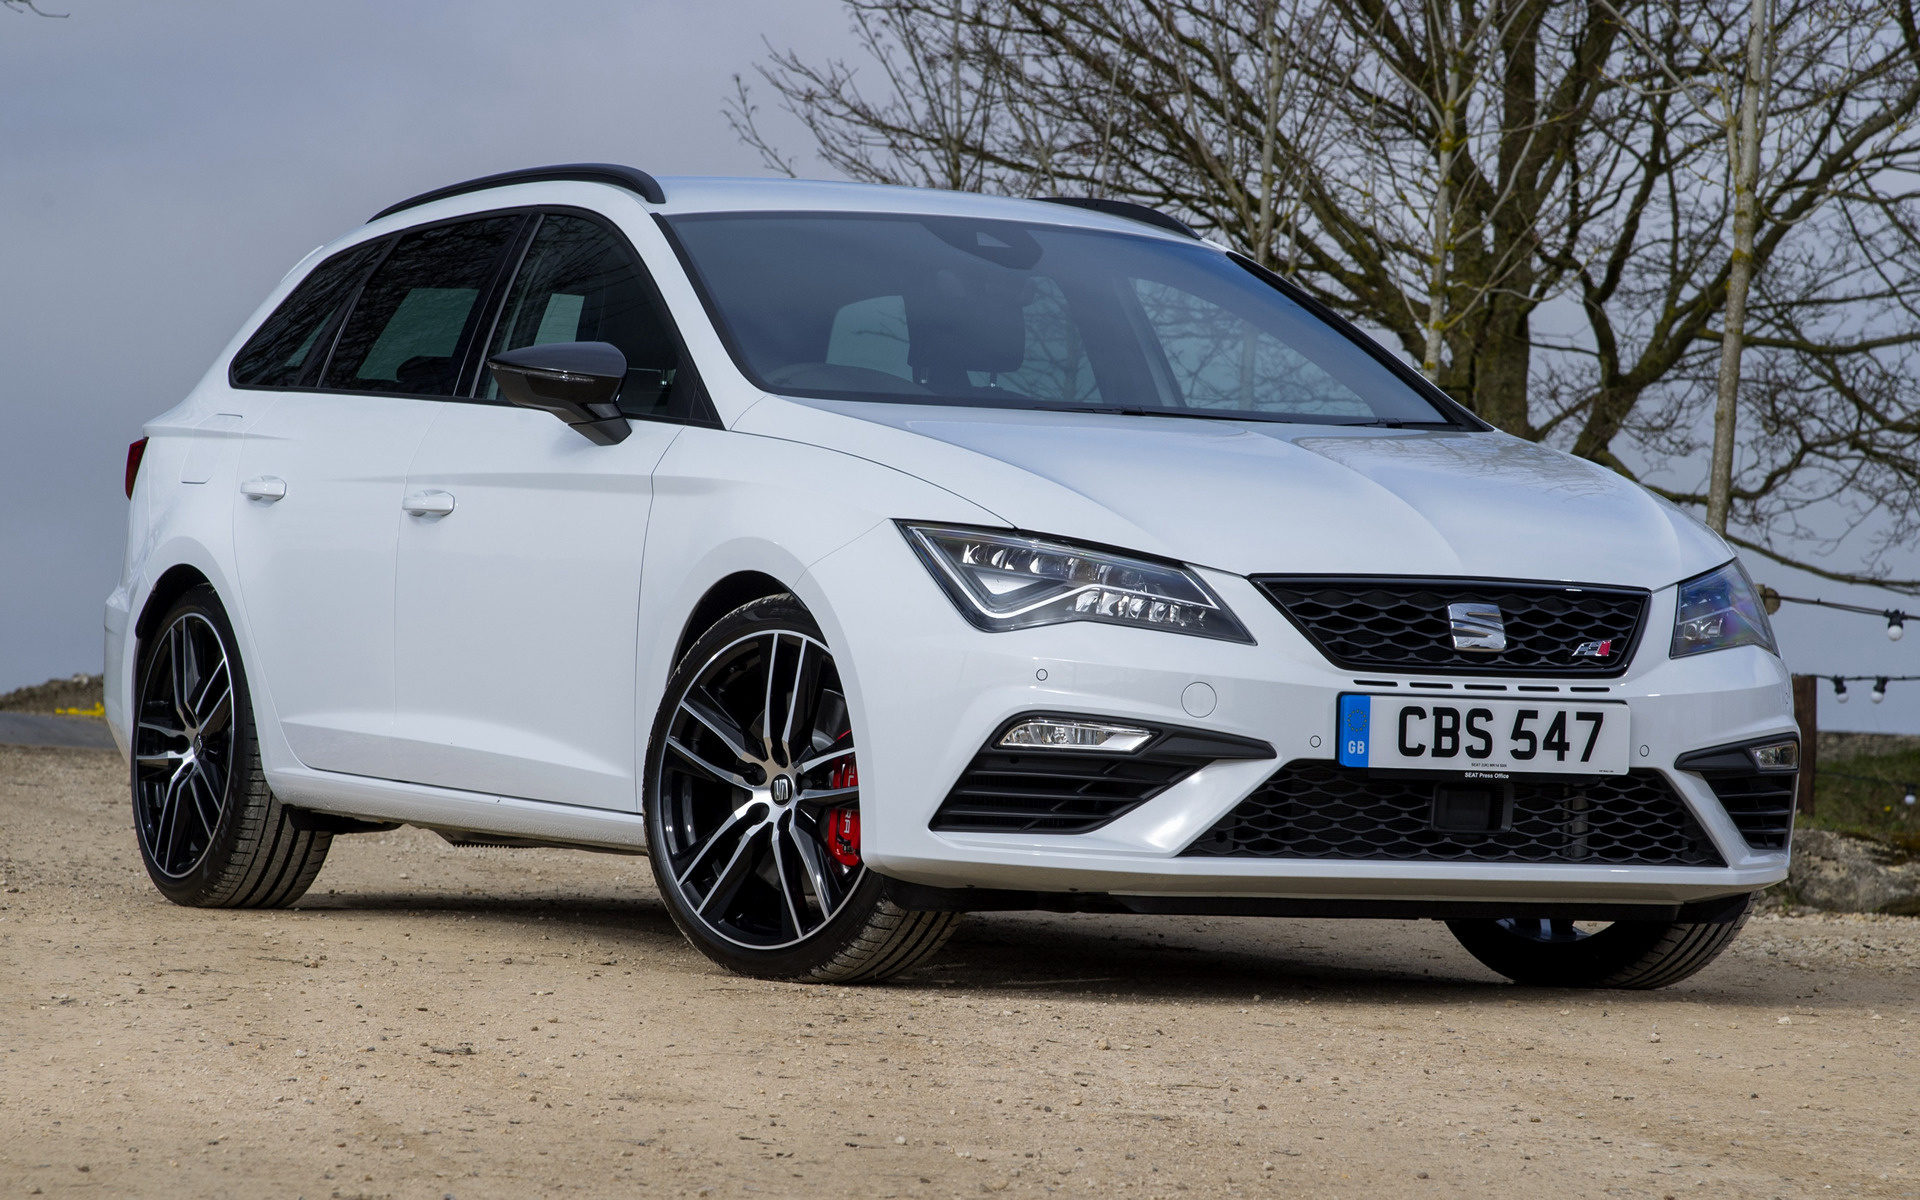 seat leon st cupra 300 2017 uk wallpapers and hd images. Black Bedroom Furniture Sets. Home Design Ideas